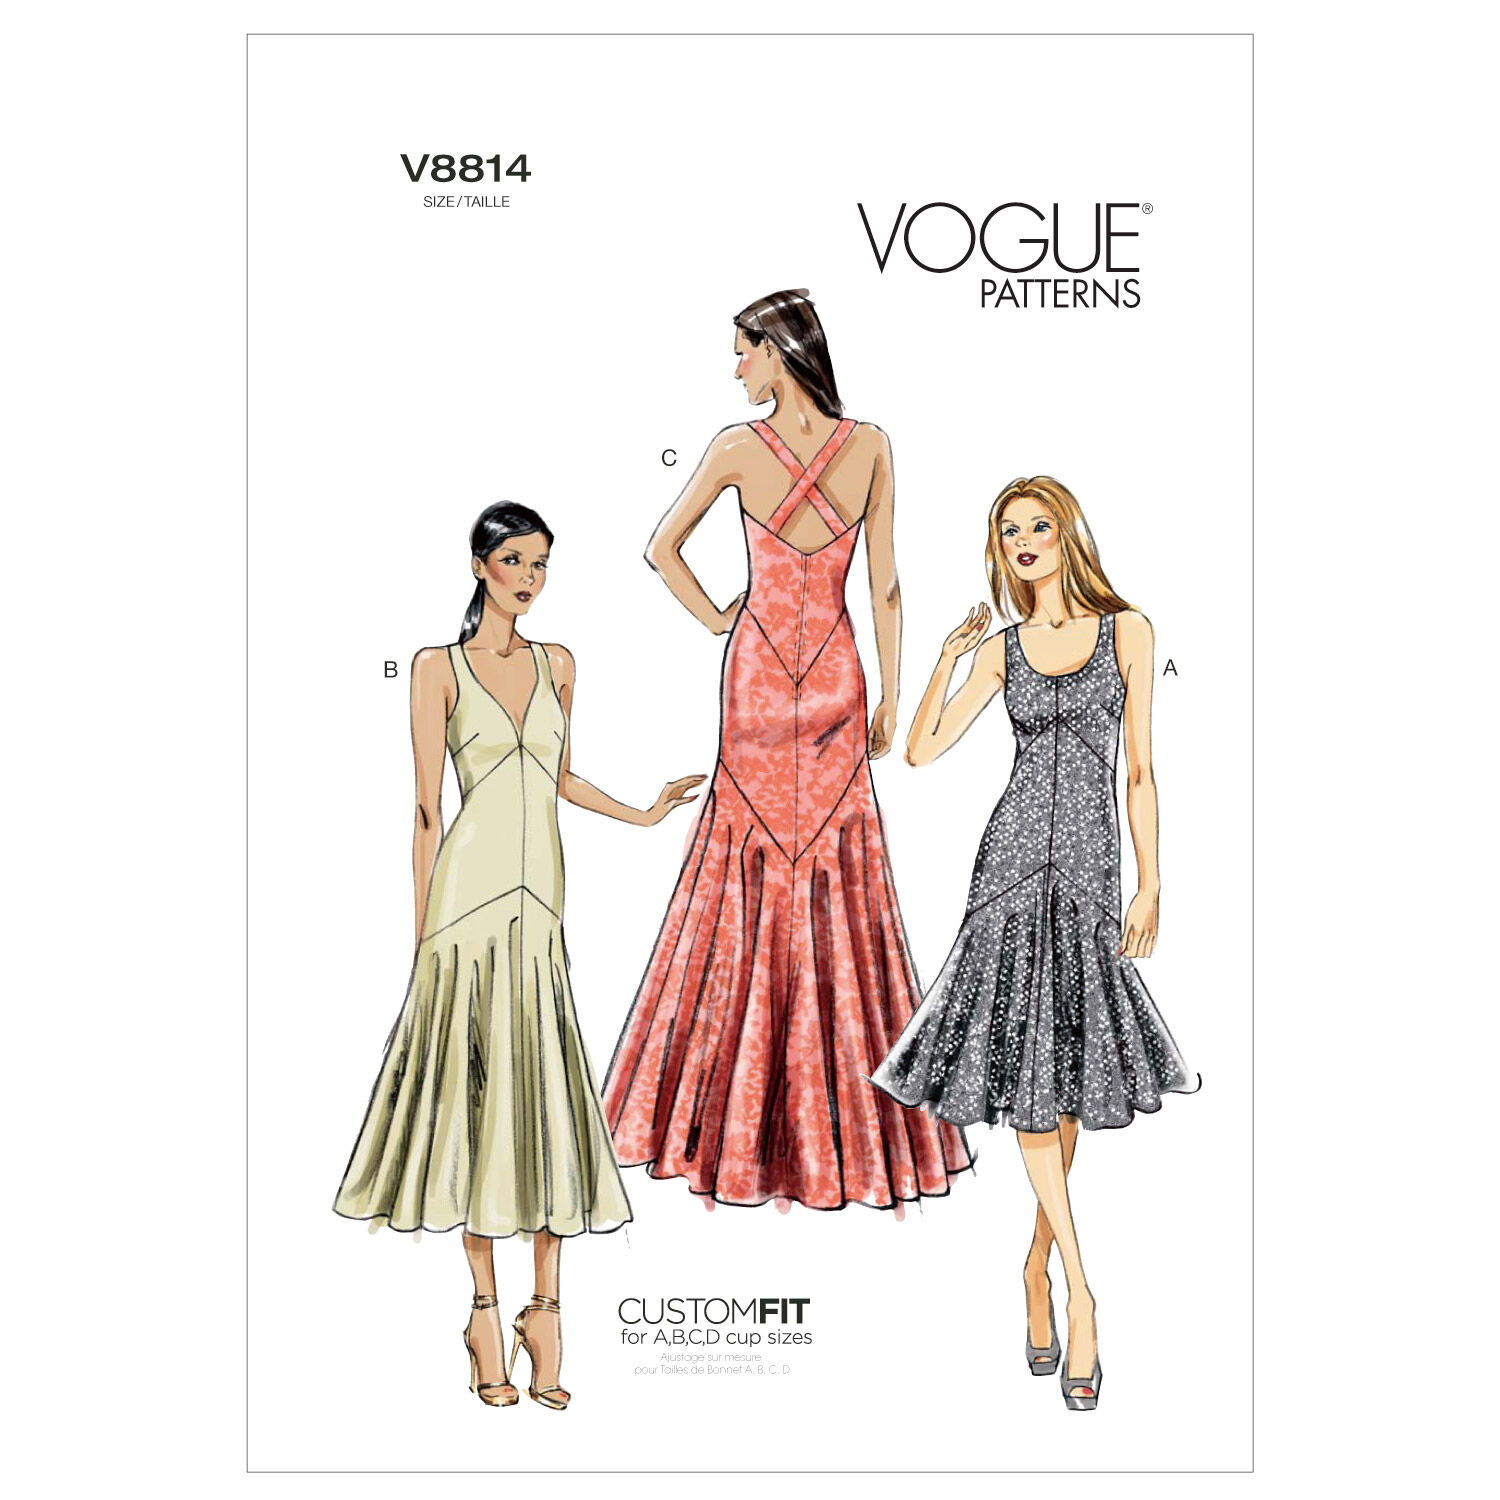 1930s Sewing Patterns- Dresses, Pants, Tops Vogue McCalls Pattern V8814 A5 6 - 8 - 10 - Vogue Pattern - Sewing Supplies - Patterns at JOANN $15.00 AT vintagedancer.com